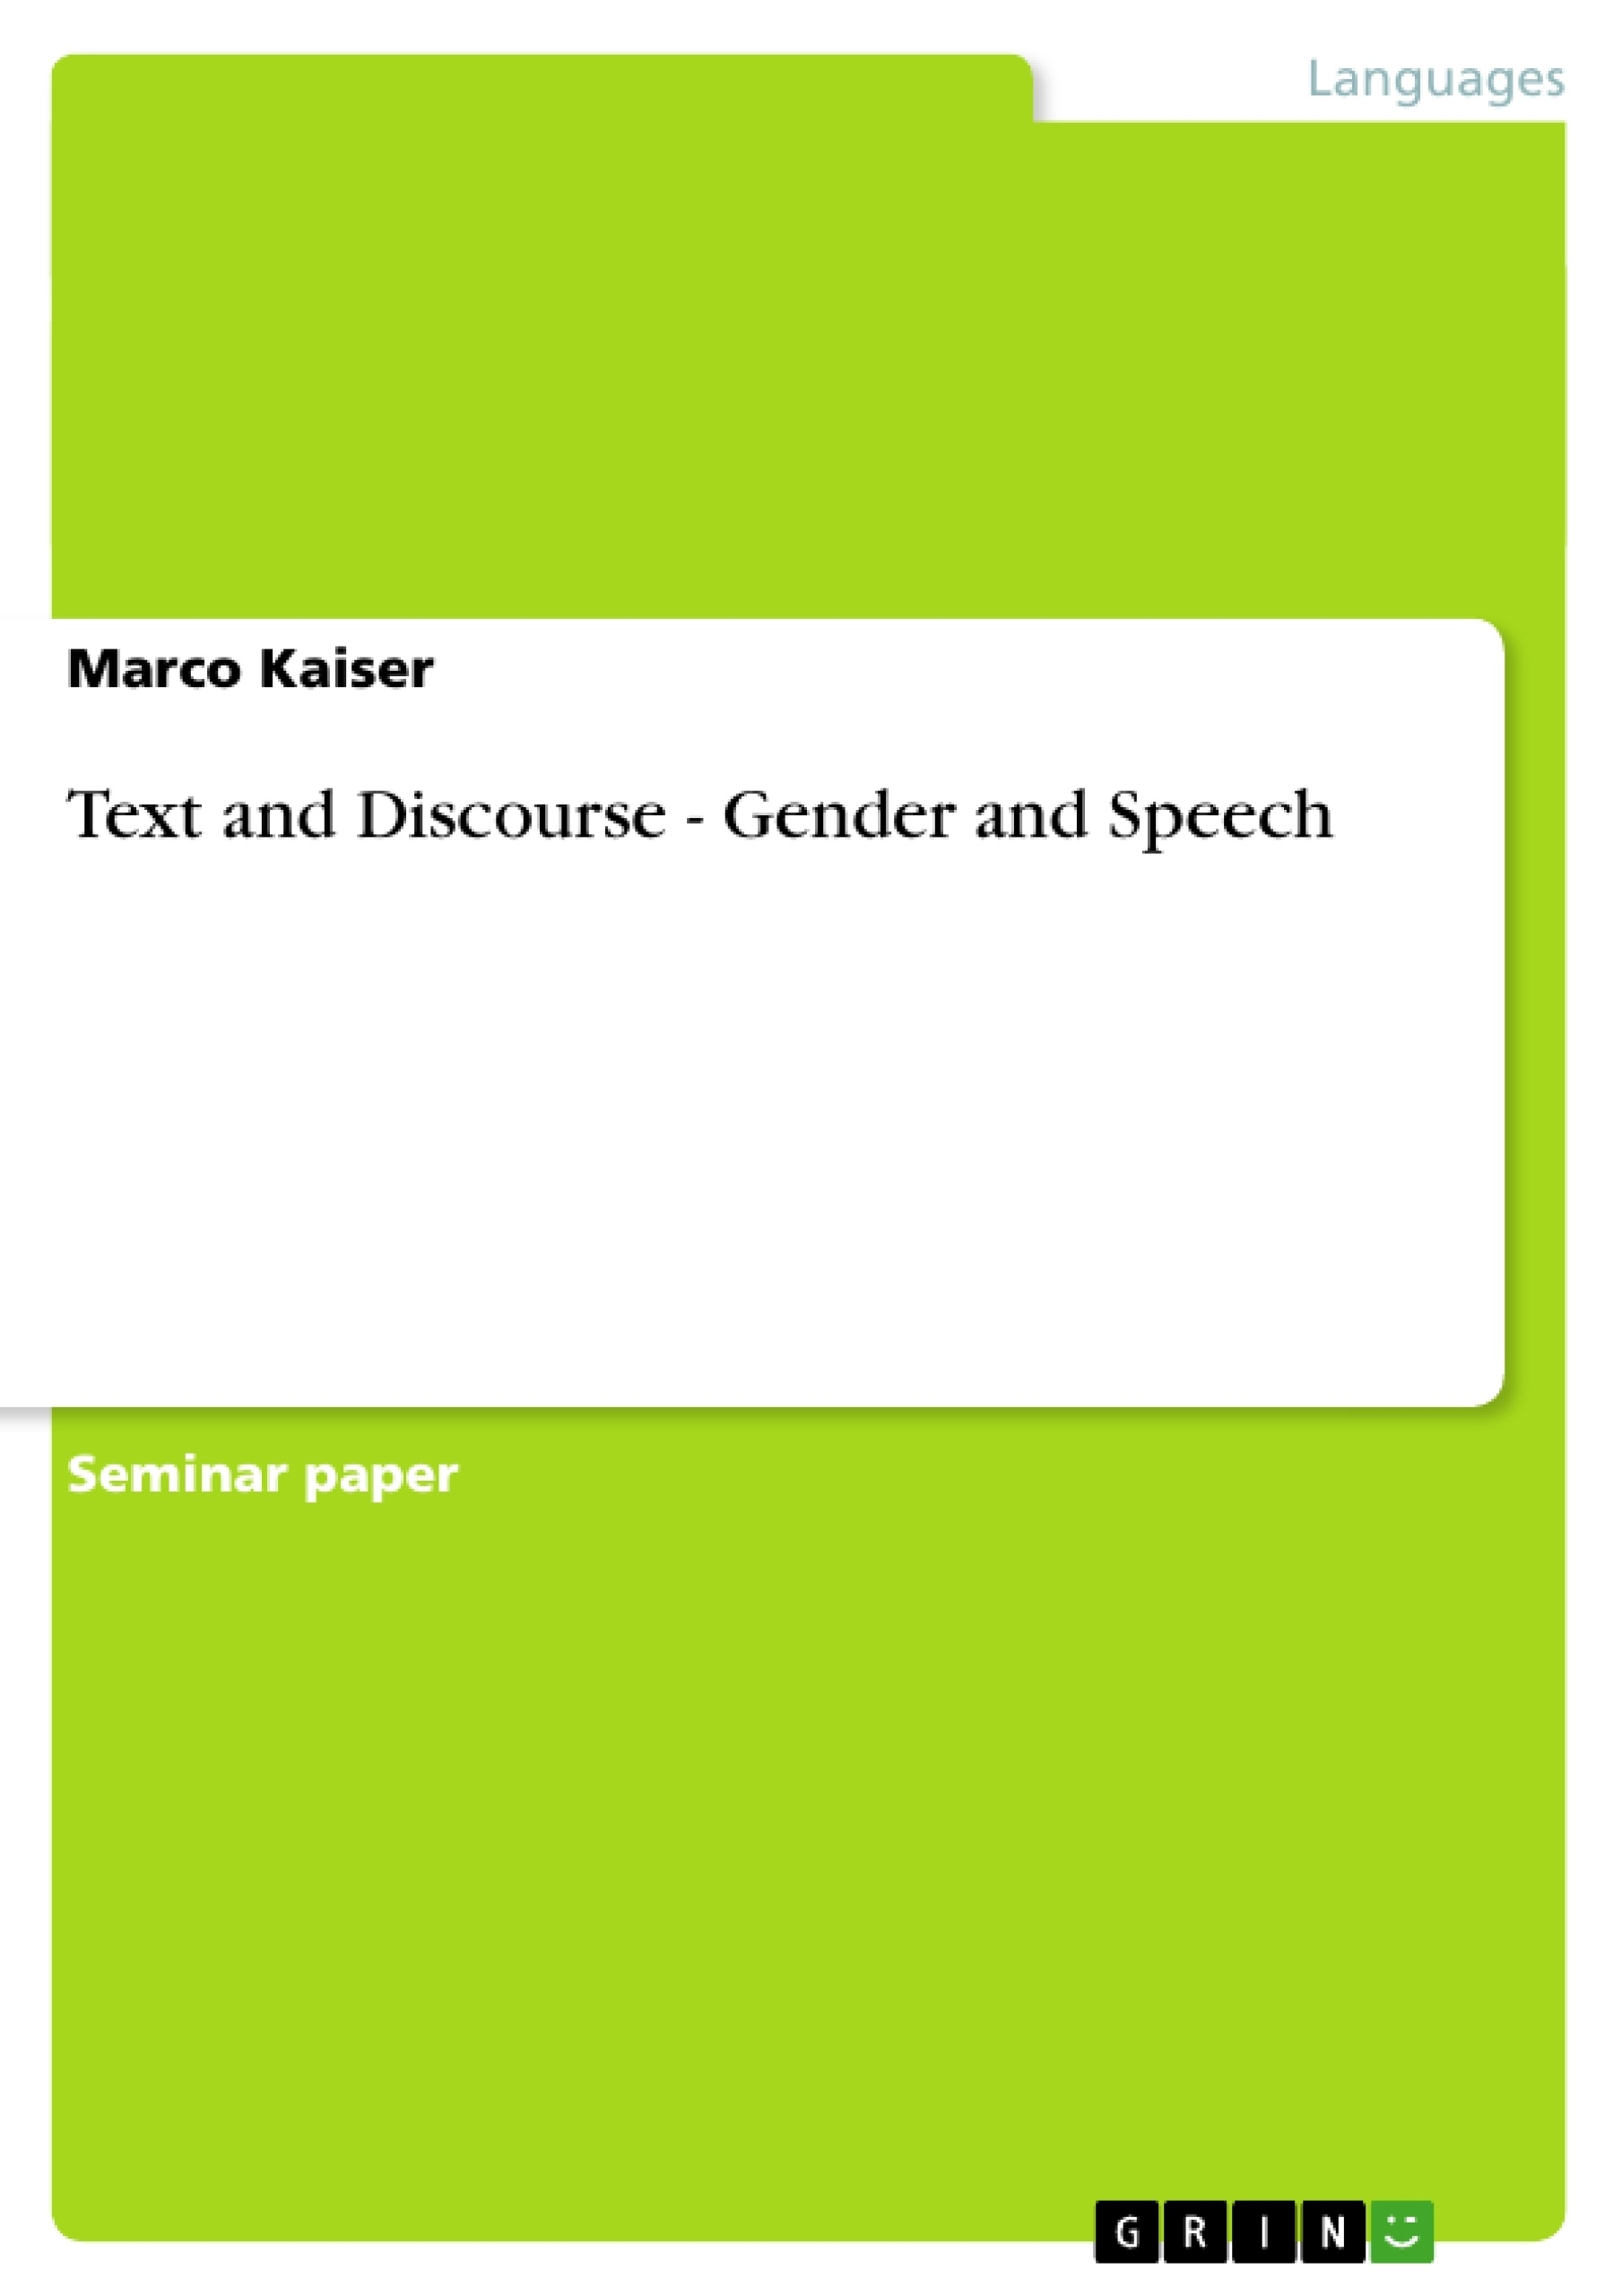 Title: Text and Discourse - Gender and Speech